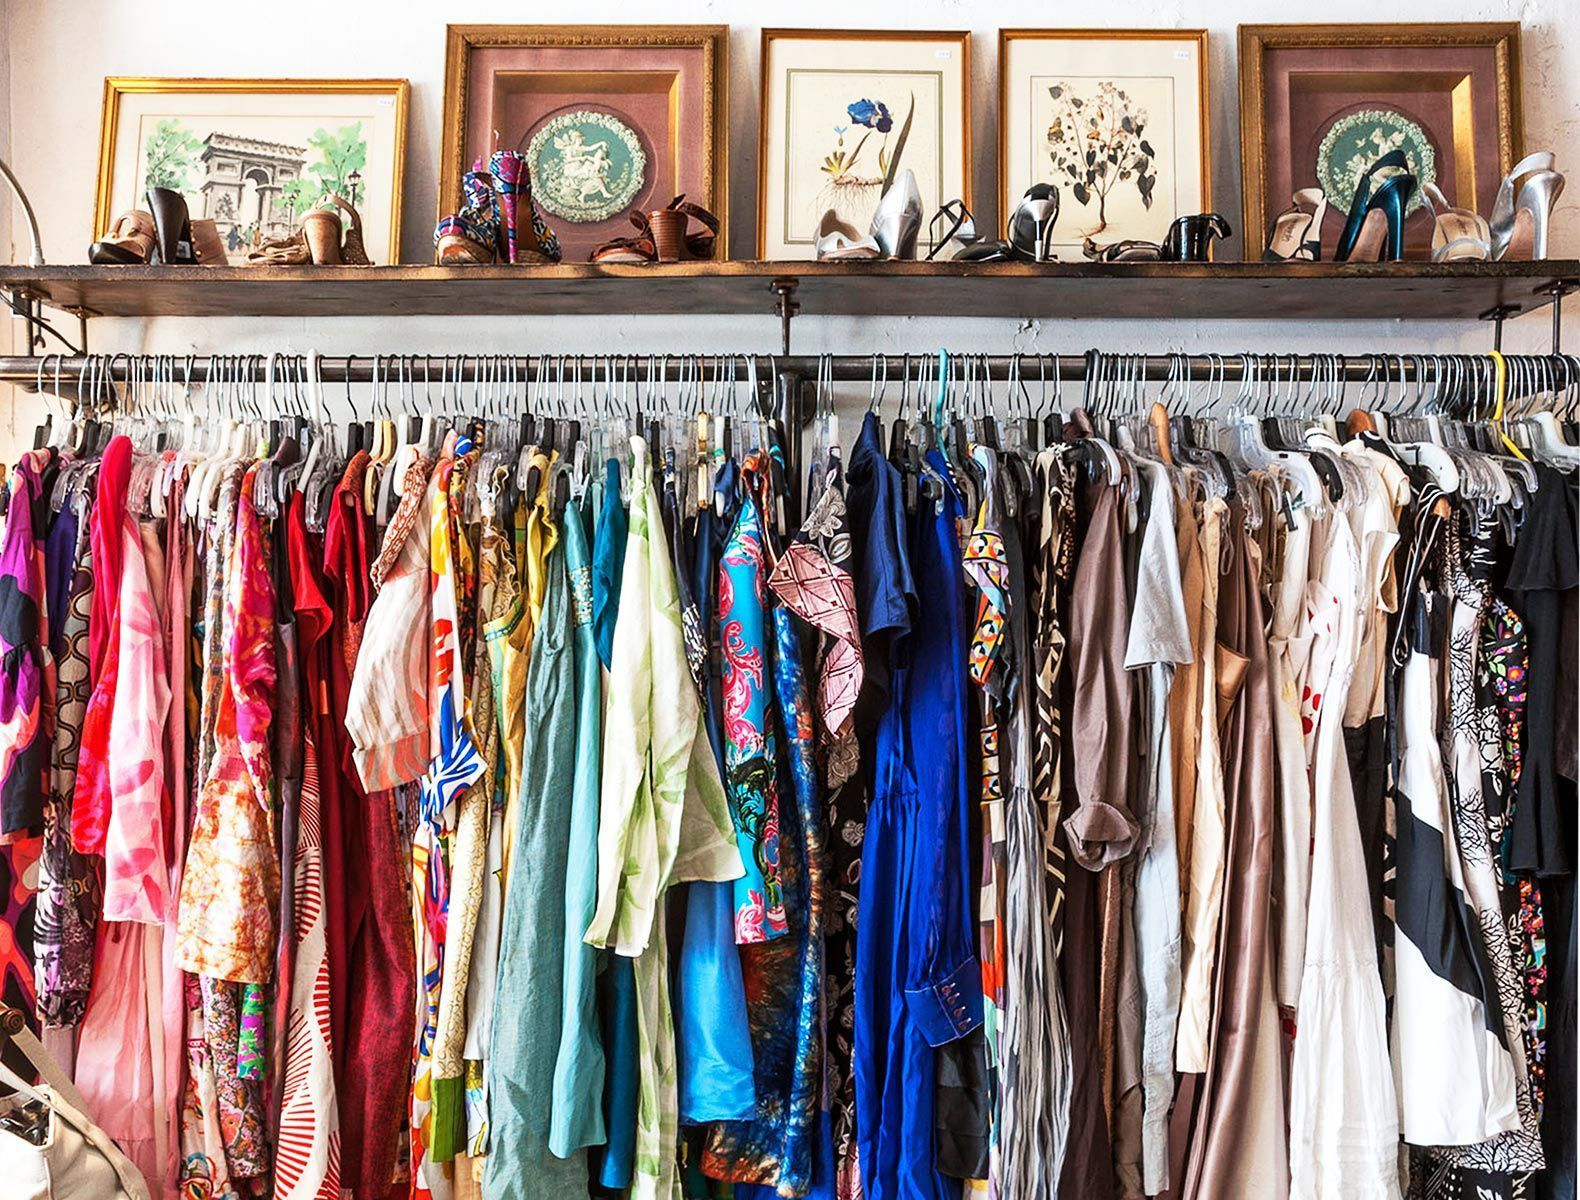 The Art Of Thrift Store Finds Art Finds Second Hand Fashion Ideas Thrift Stores Store Thrift Art Fashion Fi In 2020 Thrifting Thrift Fashion Thrift Store Finds